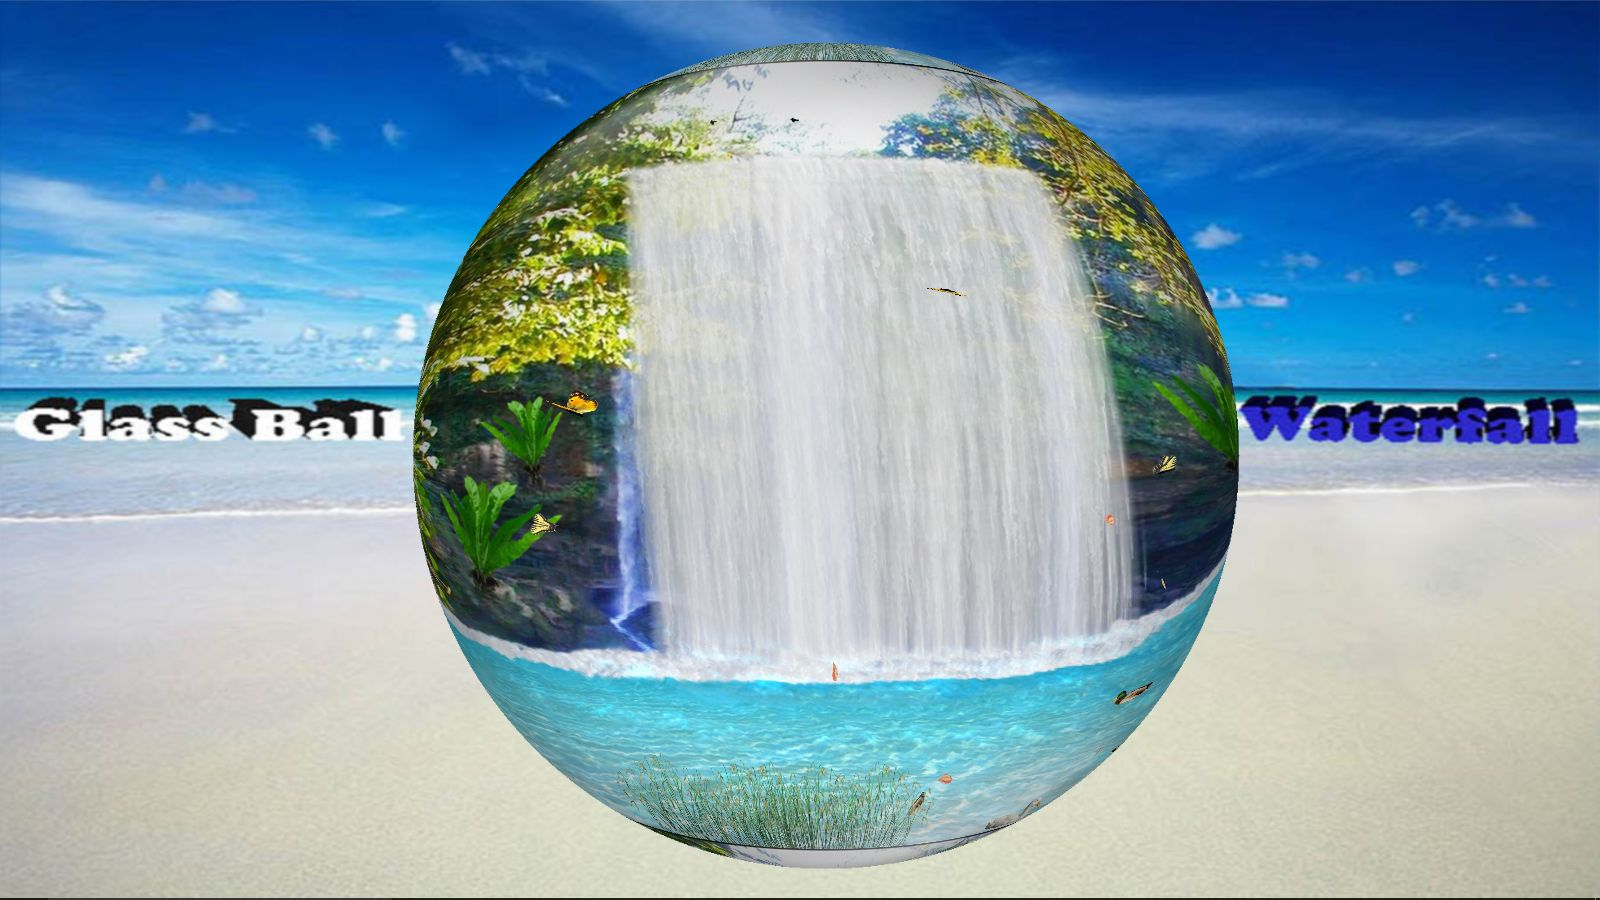 Glass Ball Waterfall [Download] (Apps For Laptops Windows 8 compare prices)